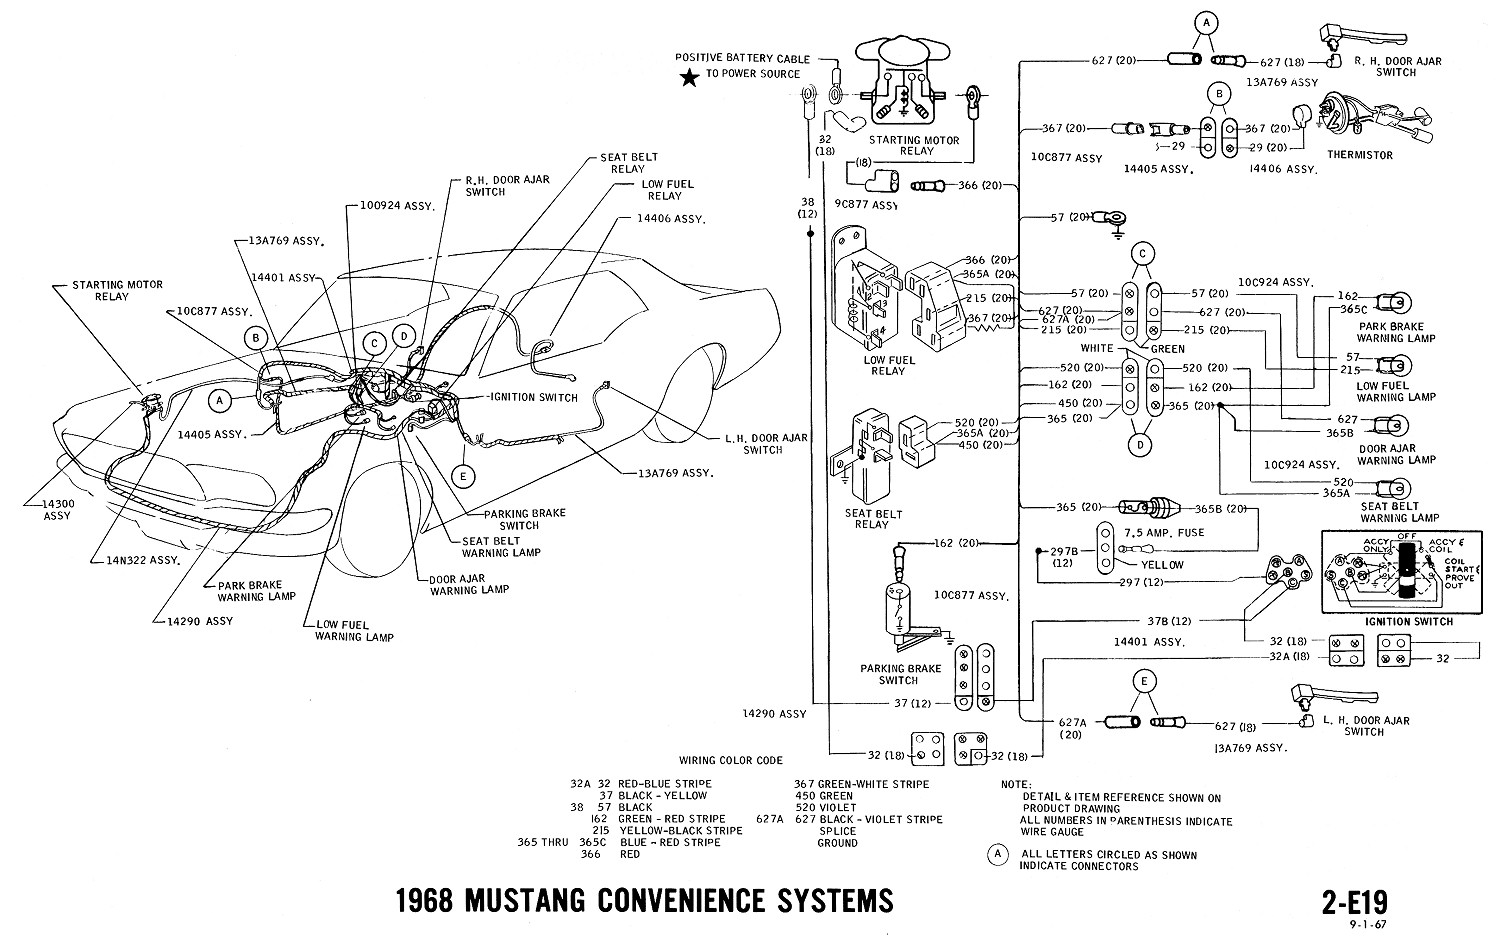 1968 Mustang Wiring Diagrams And Vacuum Schematics Average Joe 1948 Ford F1 Panel Diagram Convenience Systems